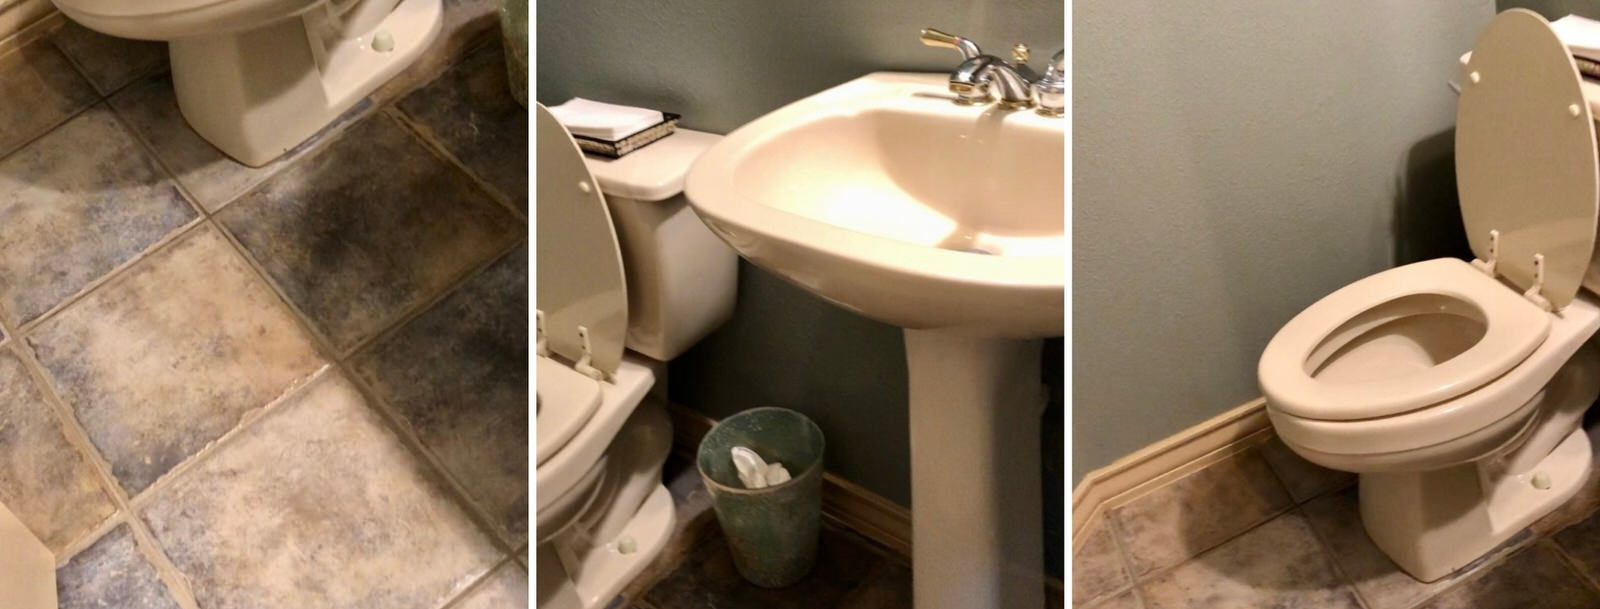 Powder Bath Remodel Using Amazon Finds | A Dash of Casual blog | home decor and gift boutique boerne san antonio texas